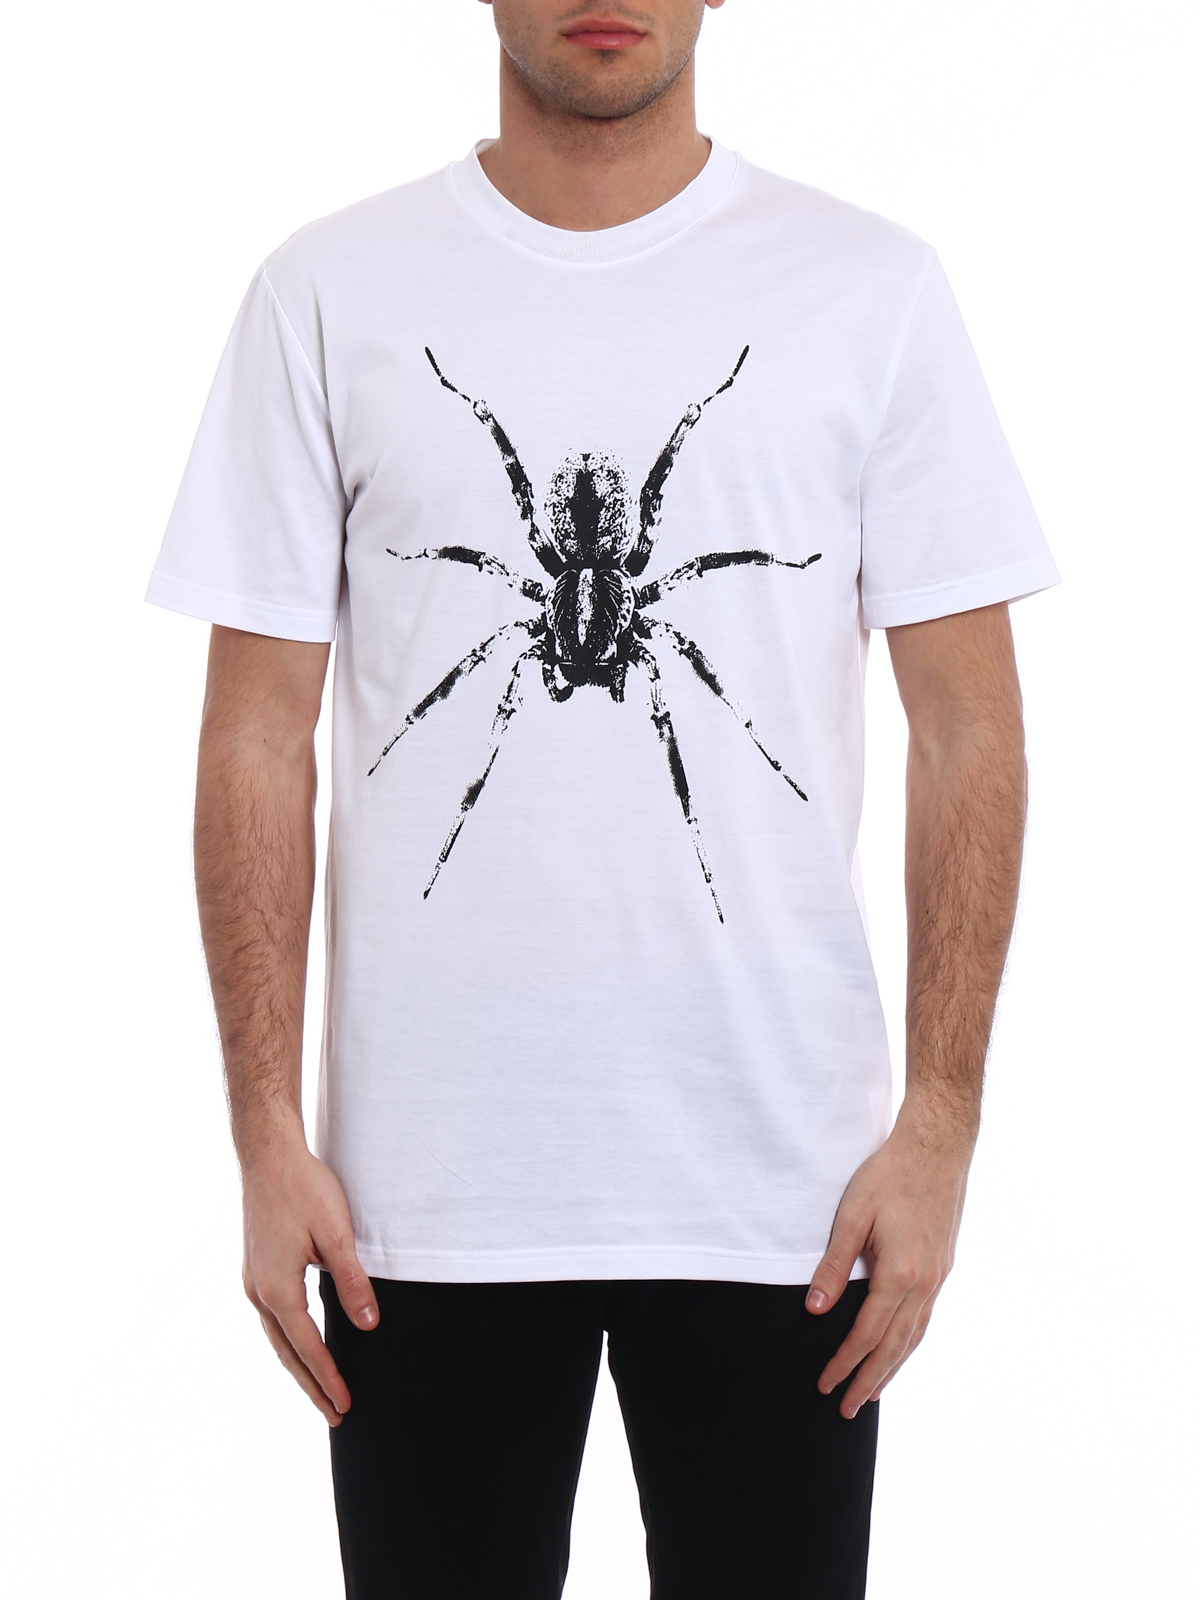 All Size spider print T-shirt - White Lanvin Comfortable Online Recommend Sale Online NaqdPH